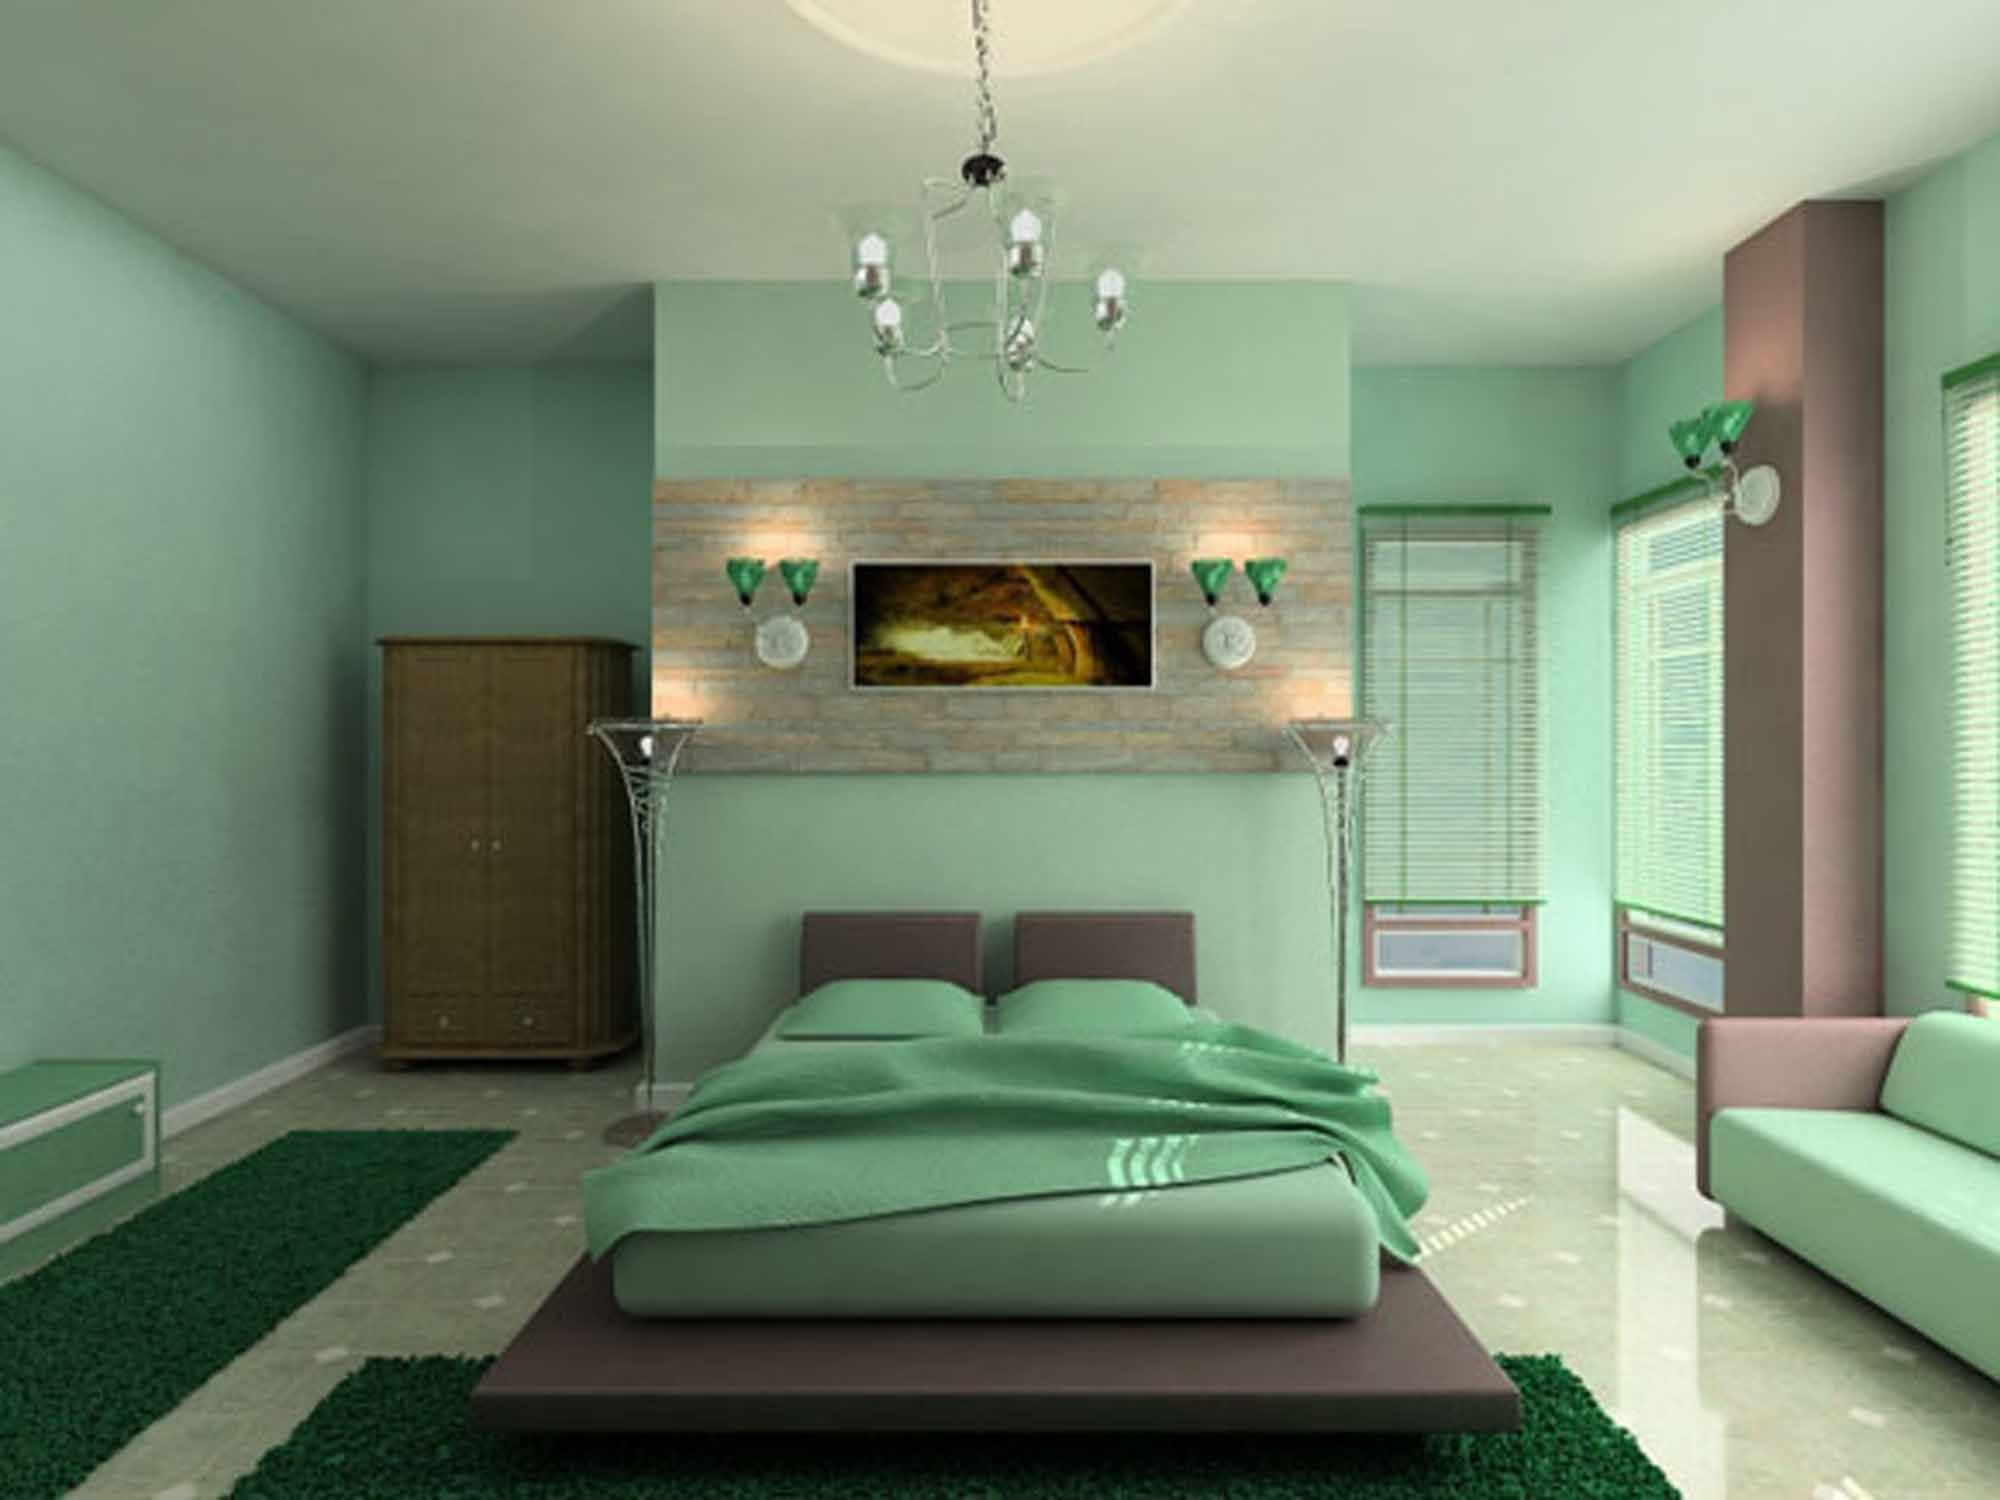 Kitchen Office Design Best Interior For Vintage Green Ideas Room Decor  Couples Bedroom Waplag Excerpt. Furniture For Small Living Room. Interior  Design For ...